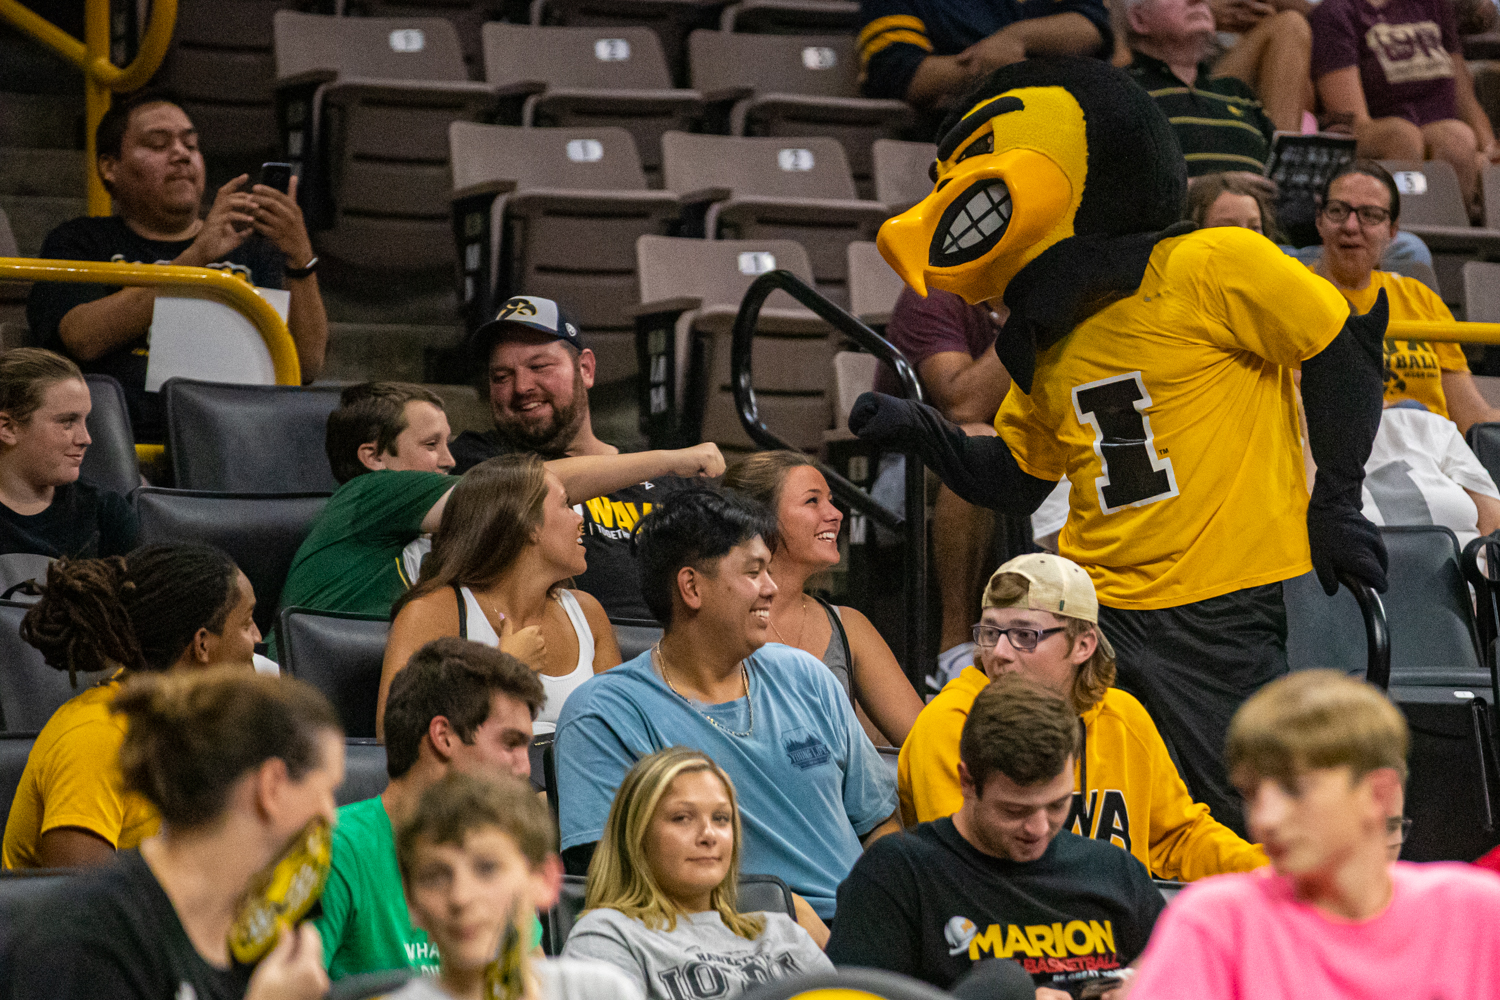 Herky+fist-bumps+a+fan+during+a+volleyball+match+between+Iowa+and+Colorado+in+Carver-Hawkeye+Arena+on+Friday%2C+September+6%2C+2019.+The+Hawkeyes+dropped+their+season+opener+to+the+Buffaloes%2C+3-0.